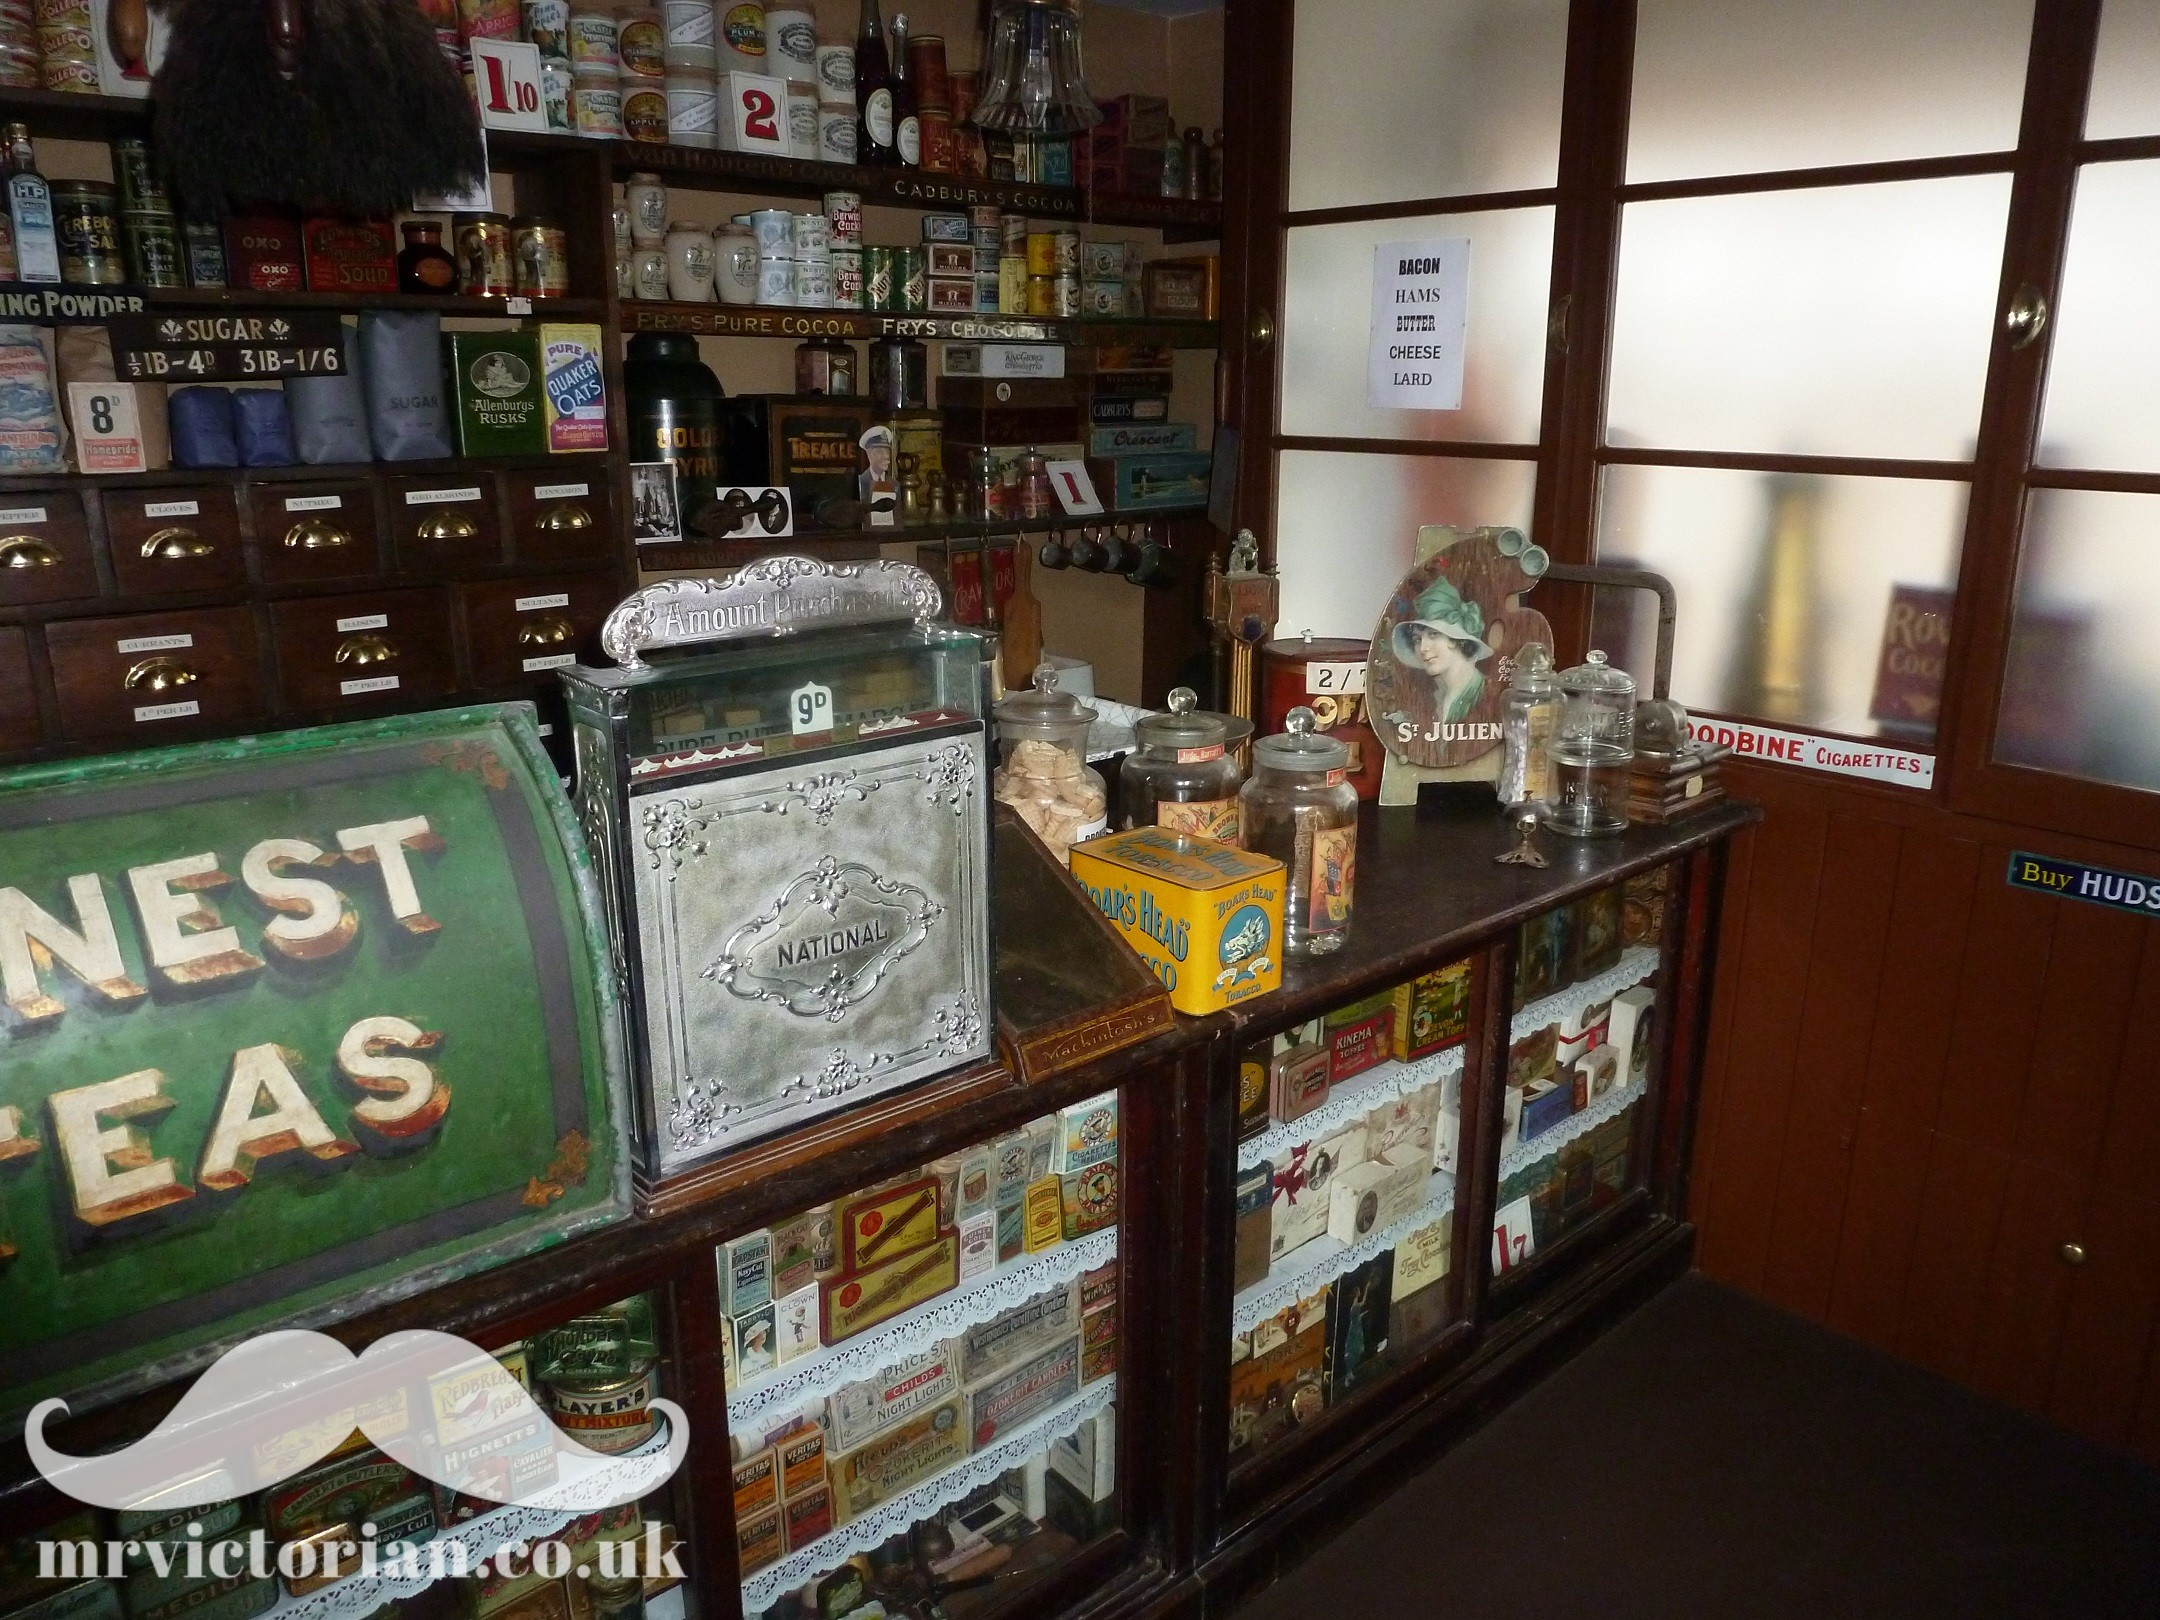 1920s grocery shop in Victorian house tour . Visit www.mrvictorian.co.uk